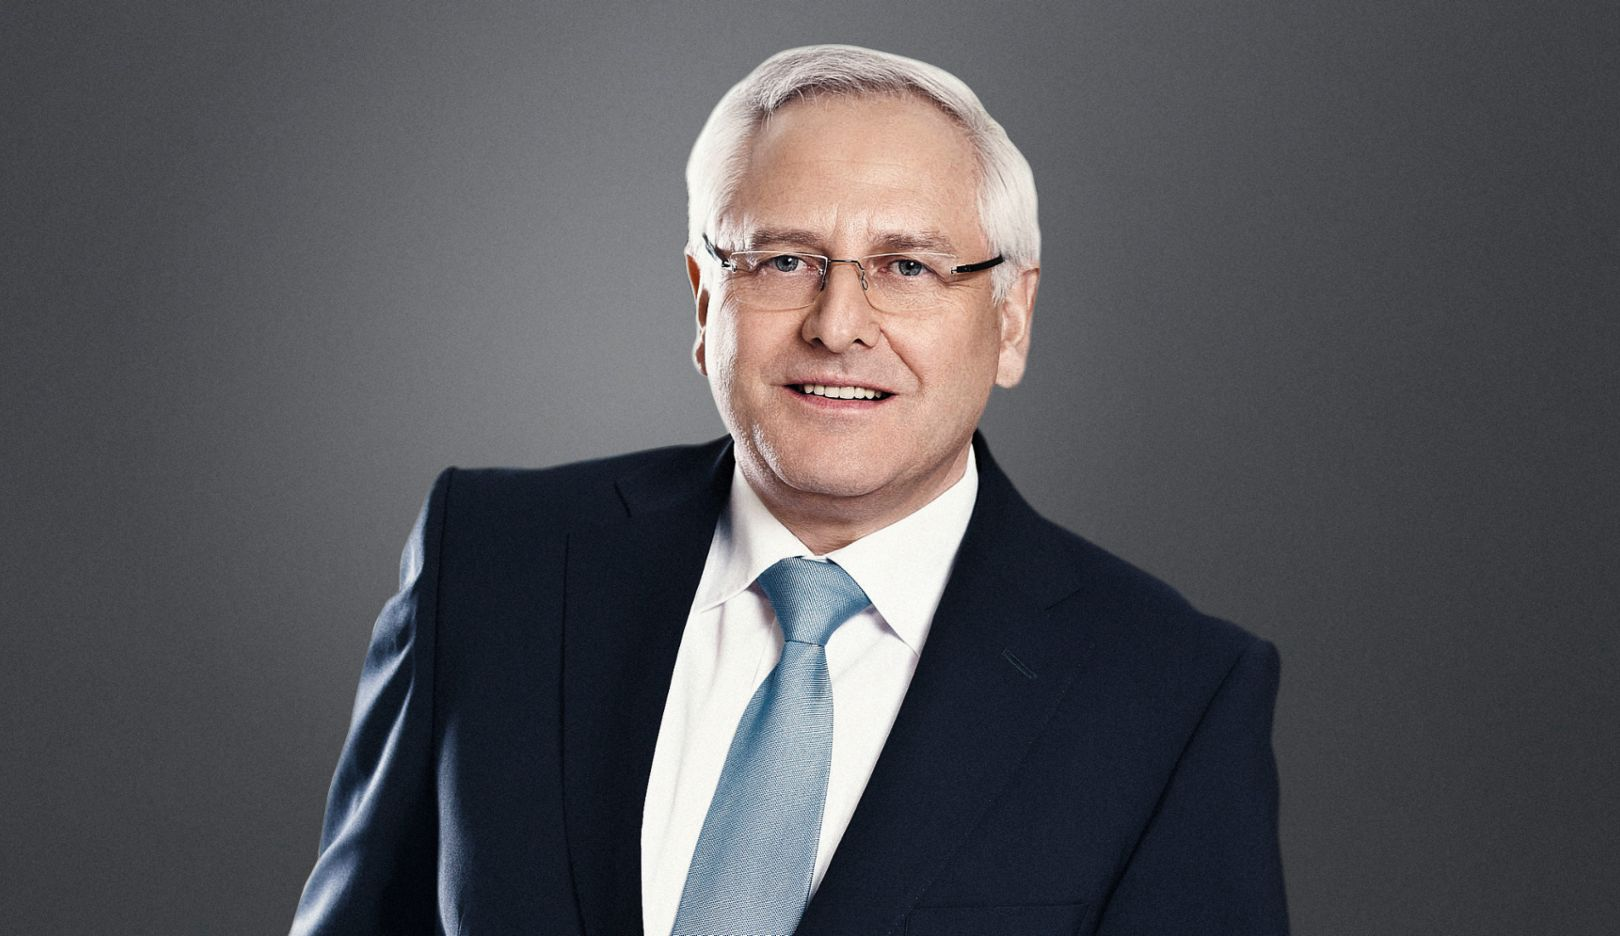 Uwe-Karsten Staedter, Member of the Executive Board, Procurement, 2016, Porsche AG